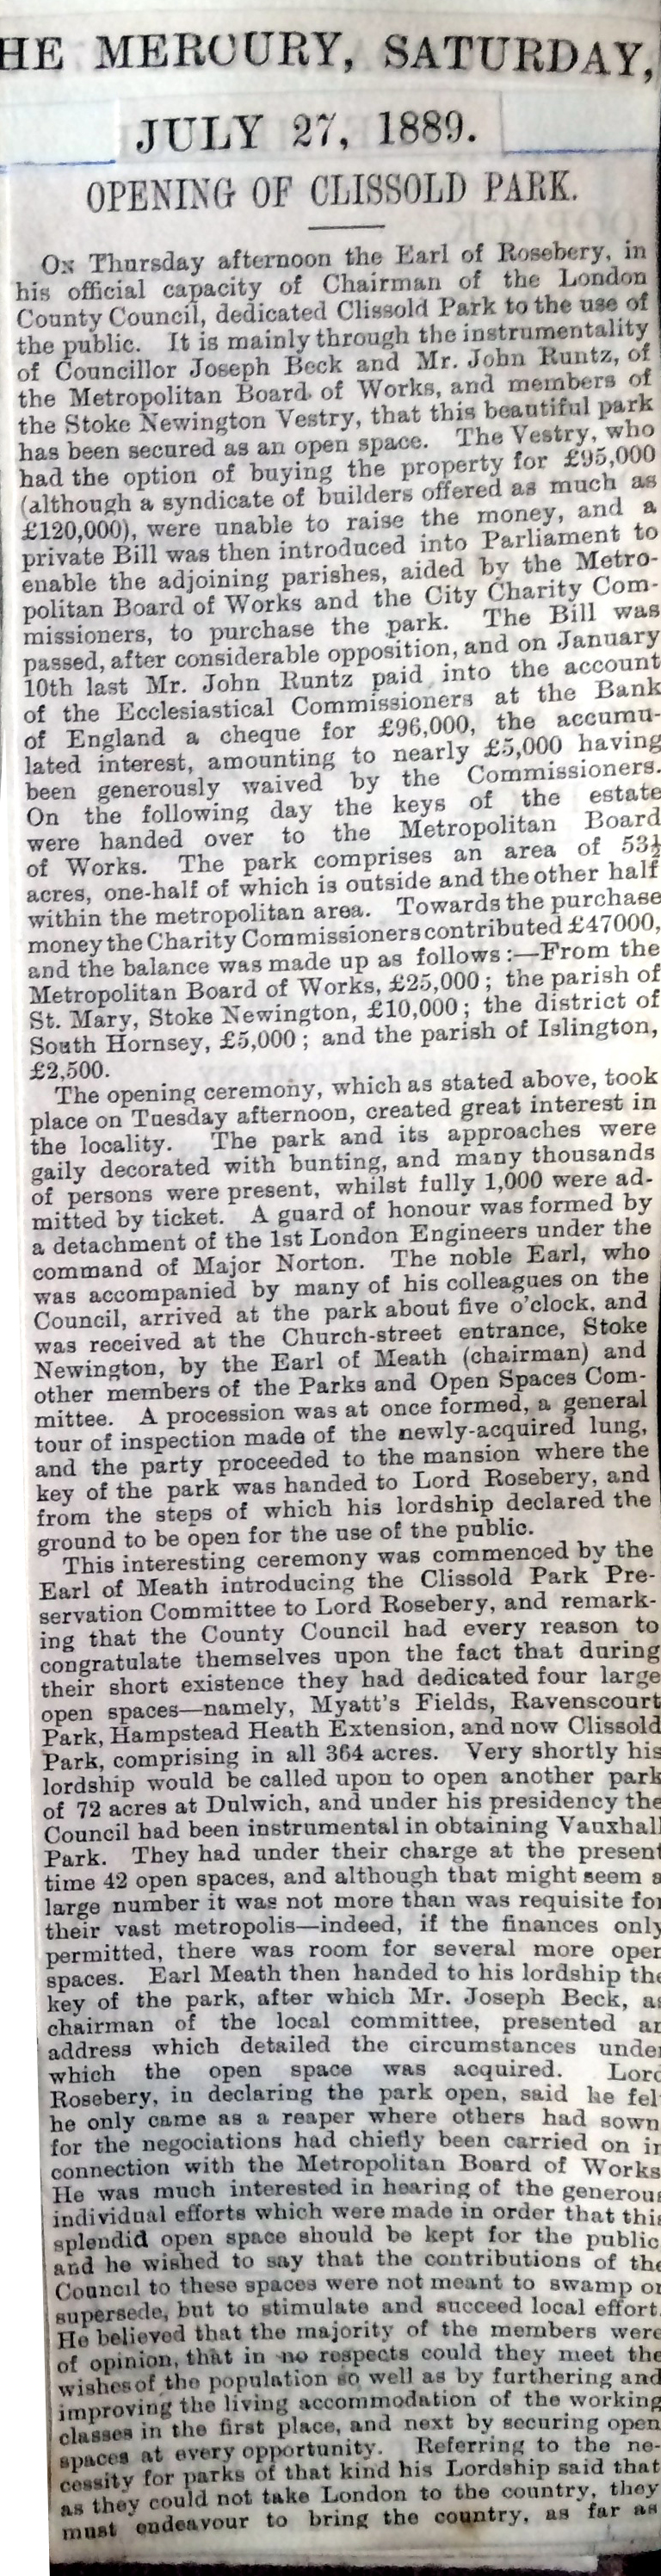 27_07_1889 NEWS CLIPPING Opening of Clissold Park The Mercury